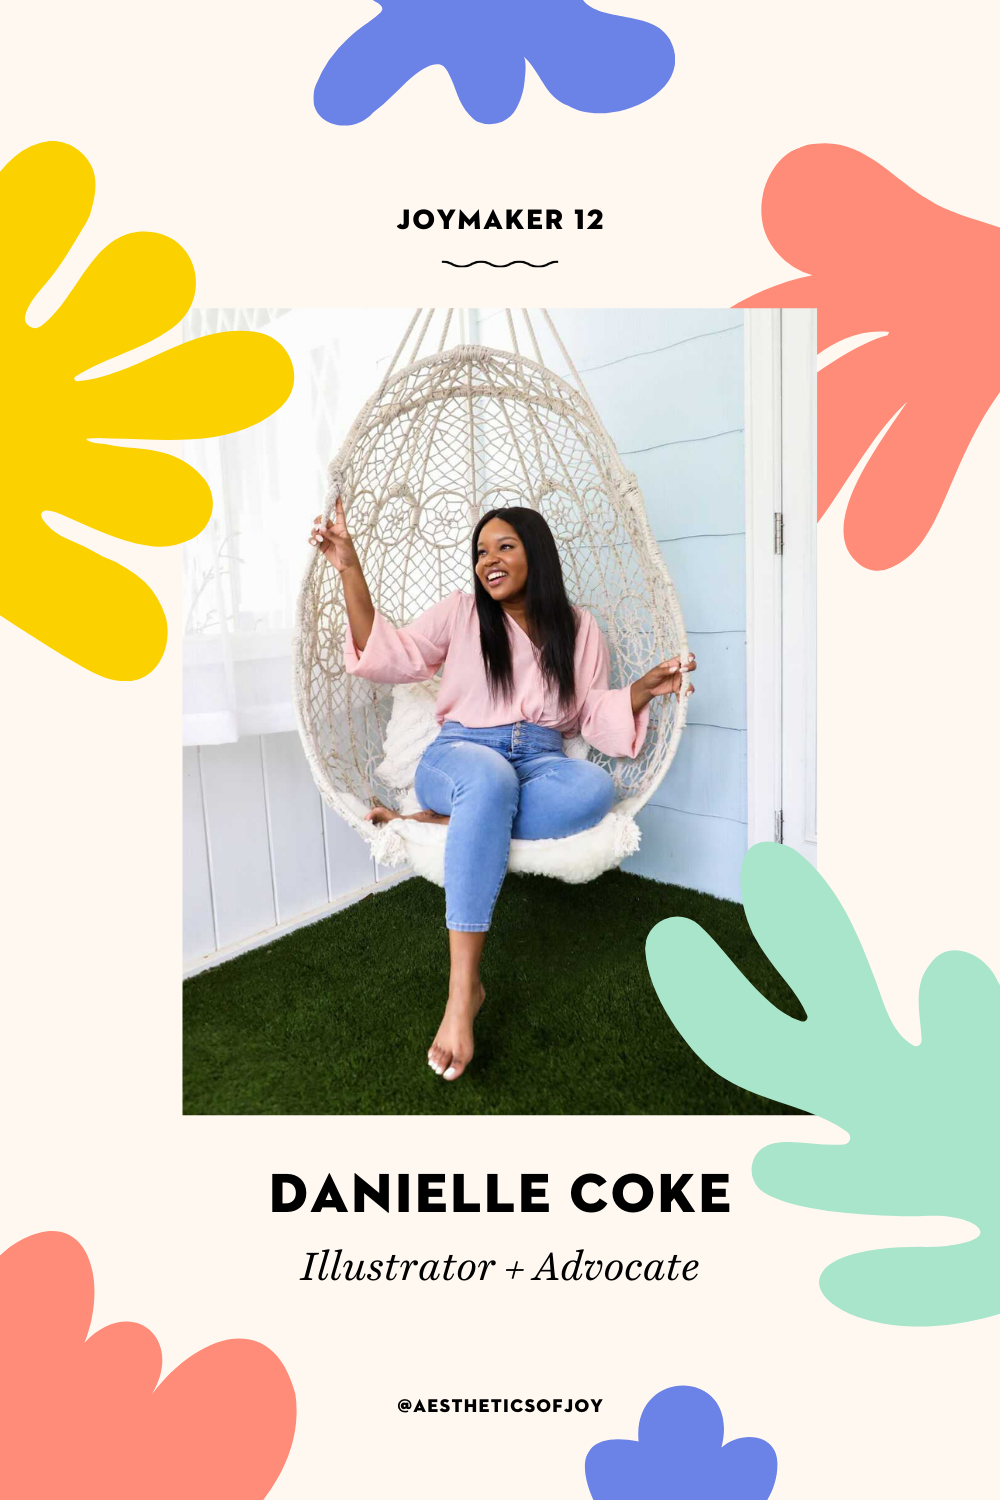 Danielle Coke is an illustrator and advocate who uses art and words to make complex issues easier to understand. In this Joymaker interview, she explains the difference between hope and optimism and reveals how she stays joyful in hard times.